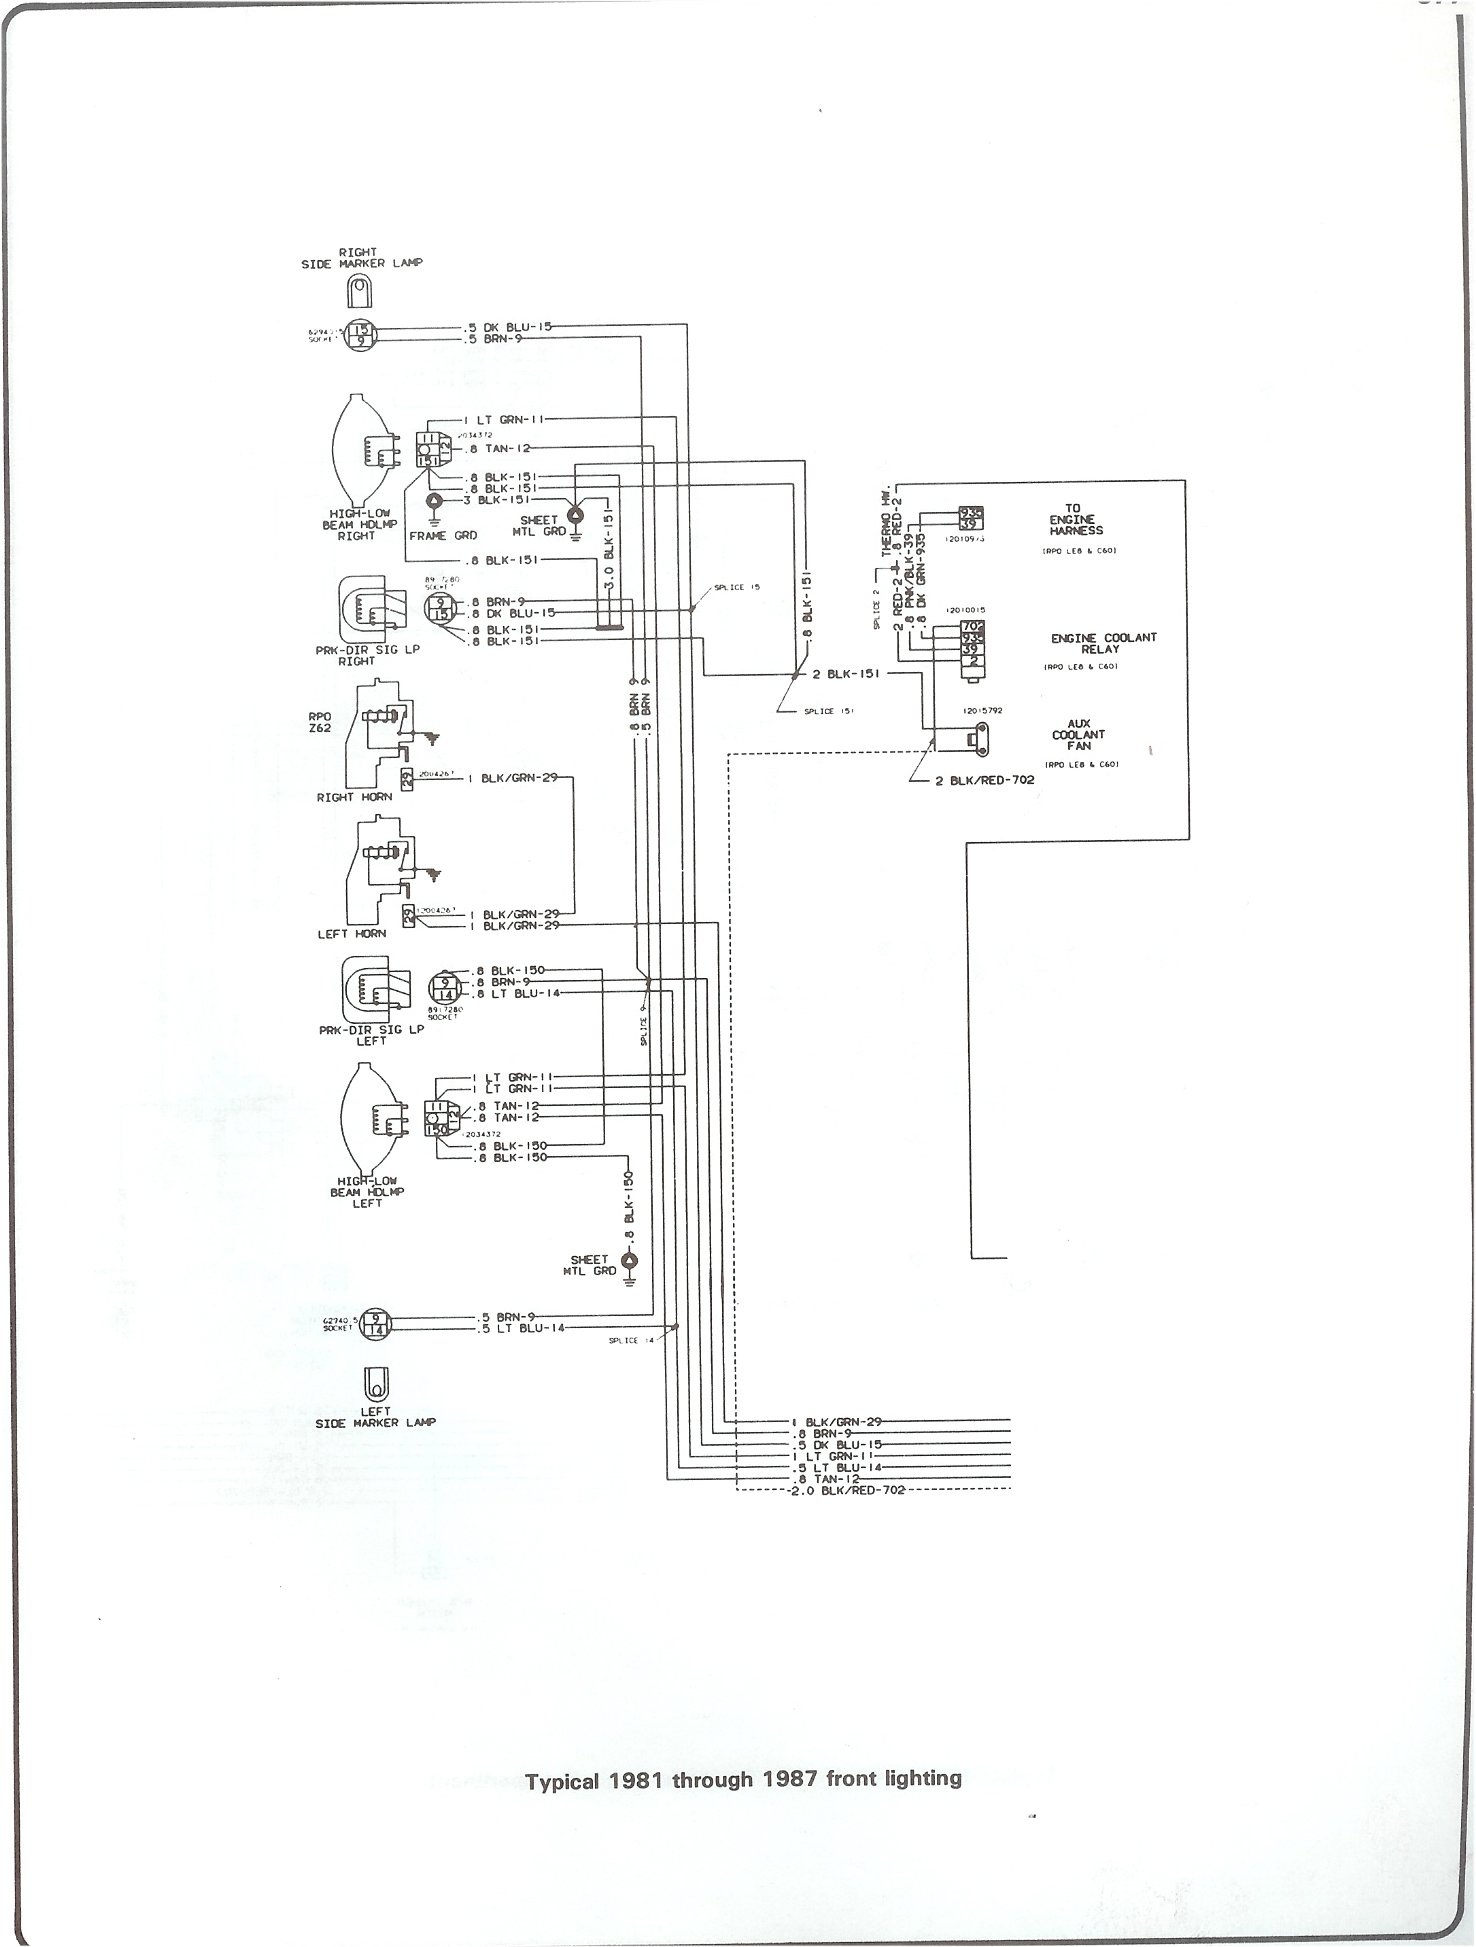 91 Chevy Truck Tail Light Wiring Diagram Opinions About 1991 Pickup Complete 73 87 Diagrams Rh Forum 87chevytrucks Com 89 Brake